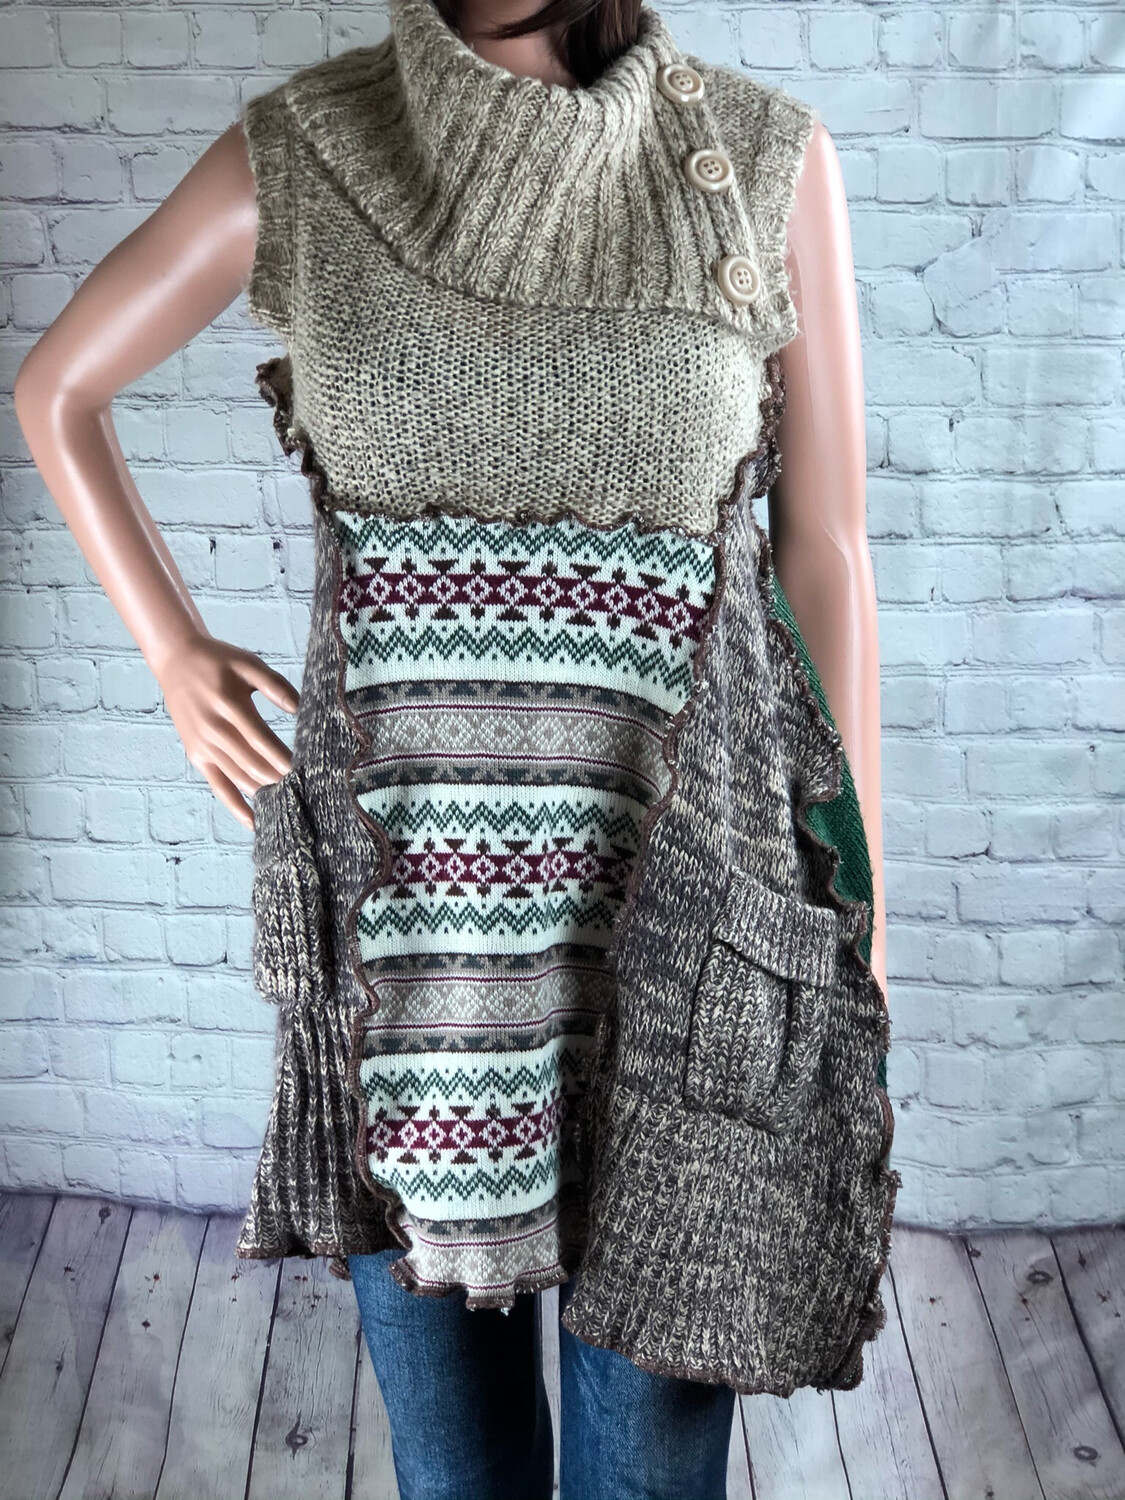 Upcycled Cowl Neck Sweater Tunic Patchwork Outside Stitch Brown Green Oversized Comfy Aline S Threads Size XL